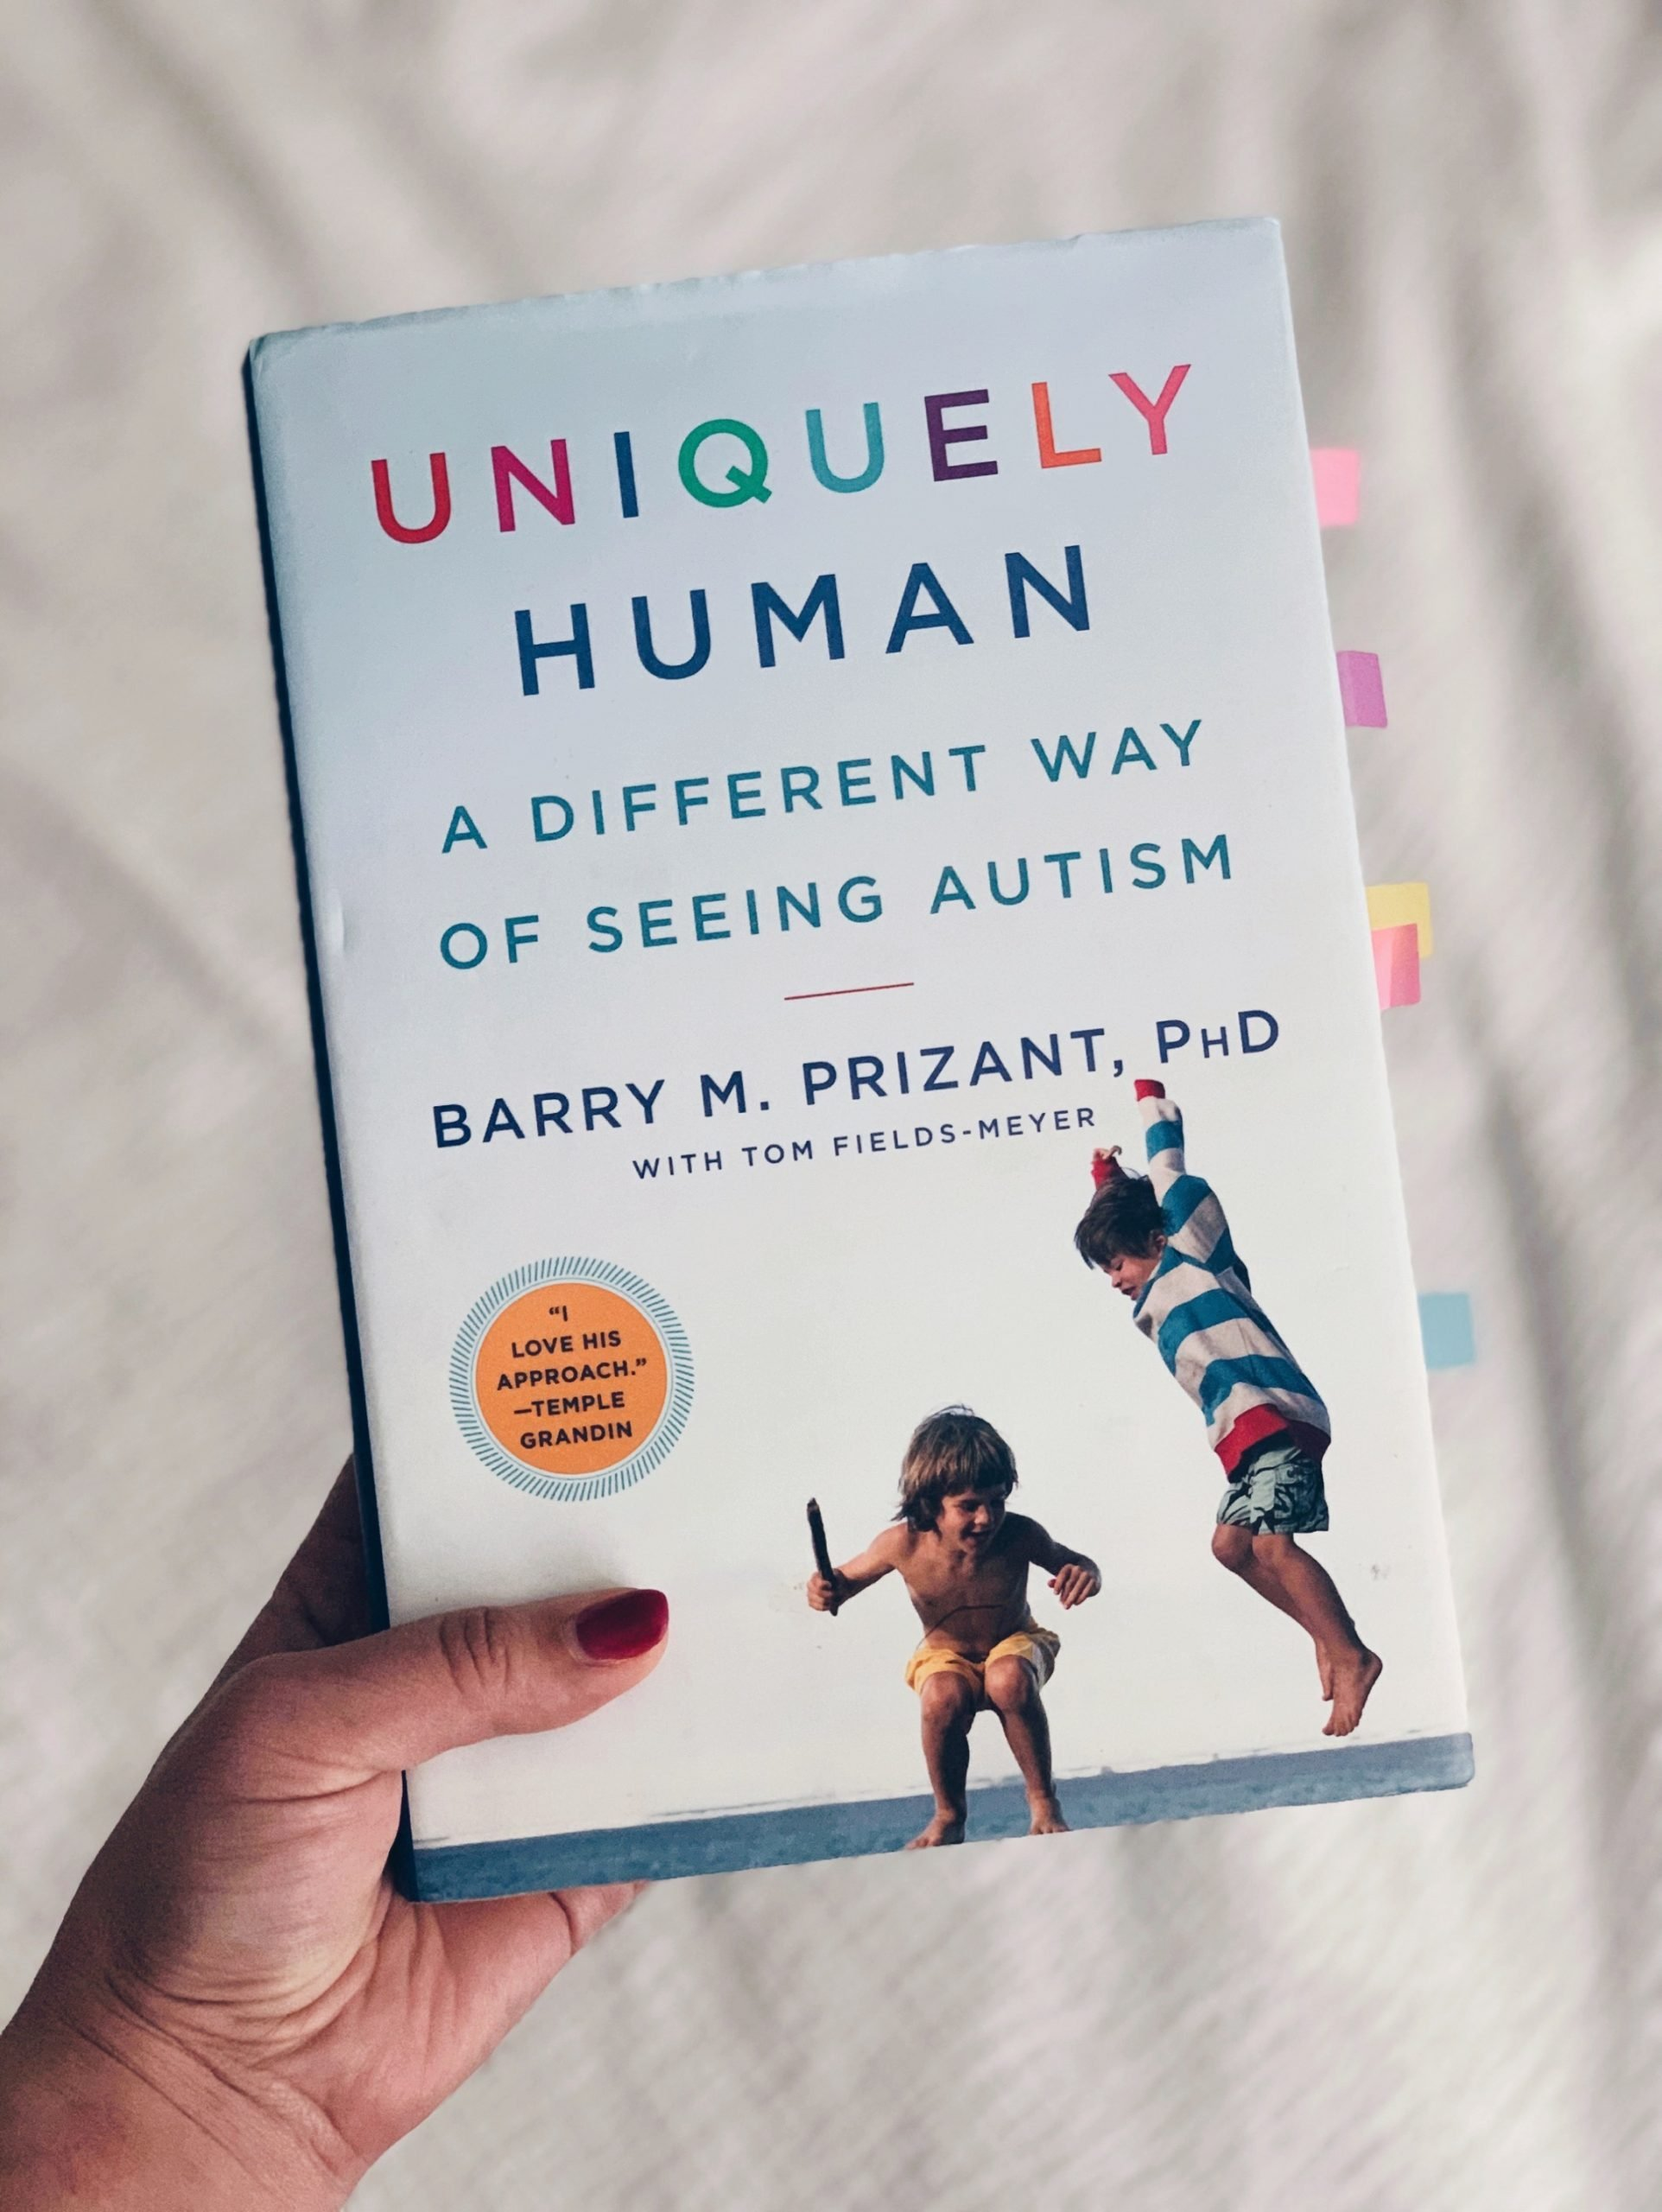 Hand holding book, Uniquely Human - Barry M. Prizant, PhD